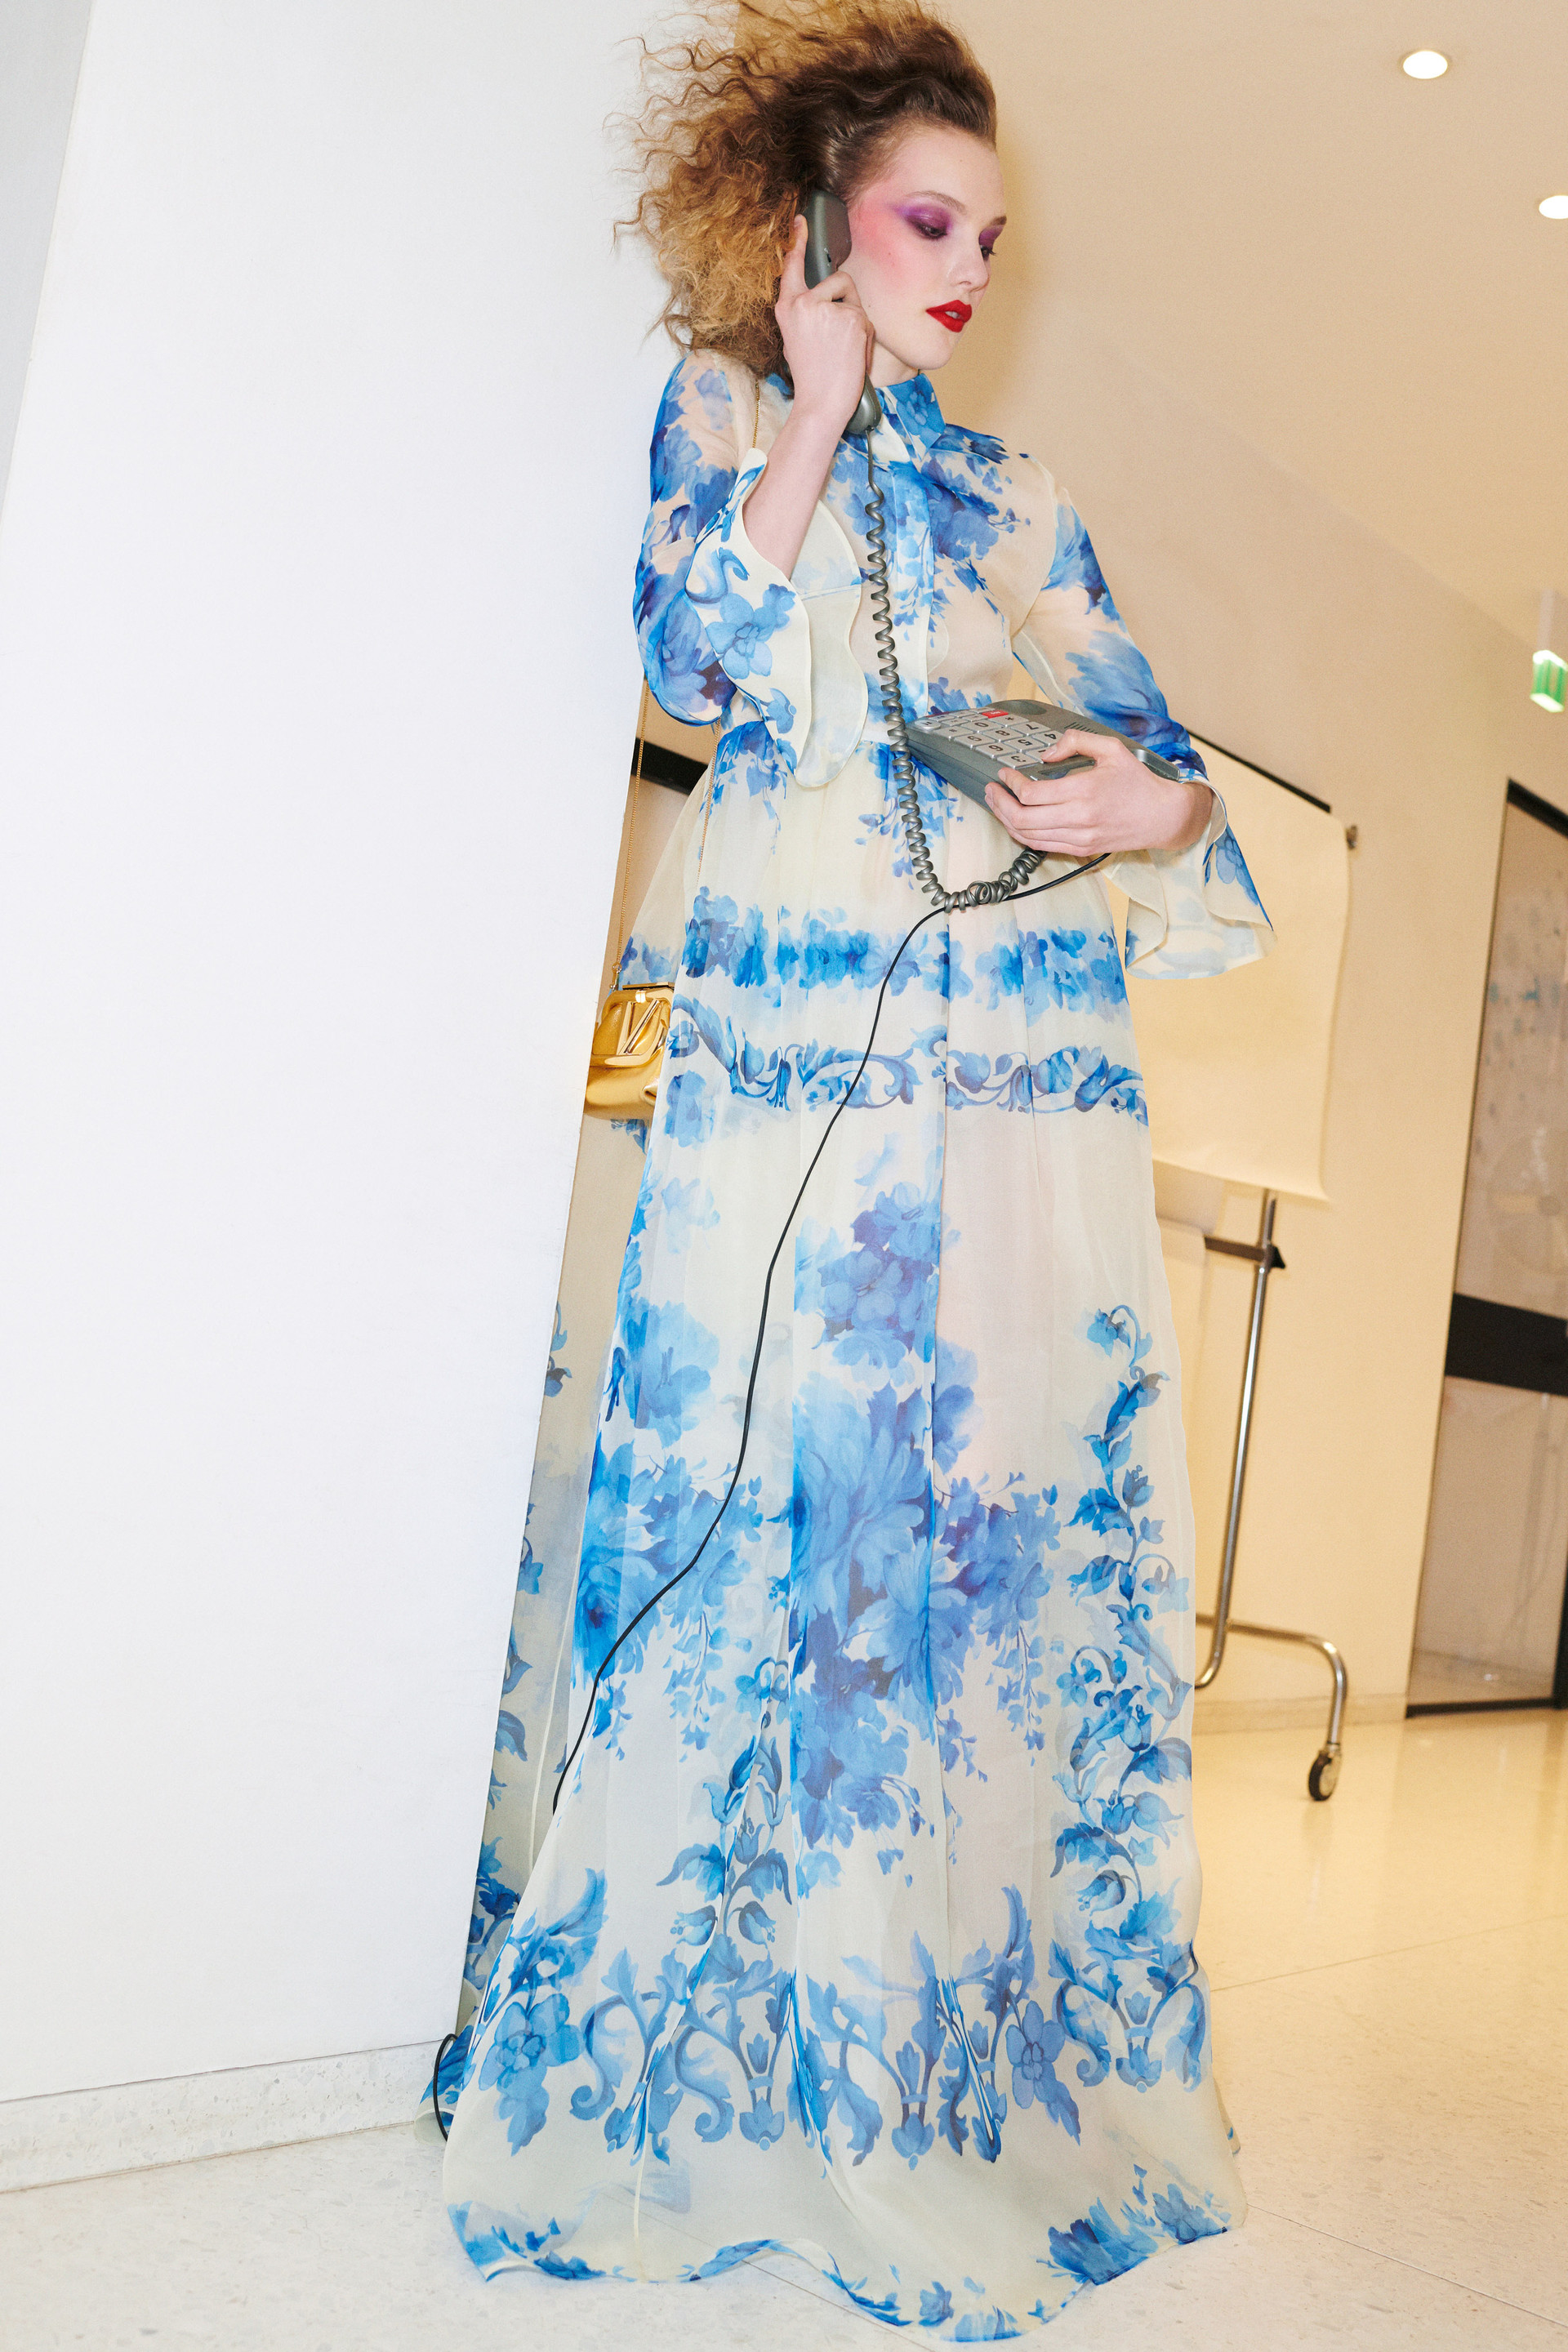 Blue's Clues: Valentino Bluegrace is the collection to have in your wardrobes (фото 1)